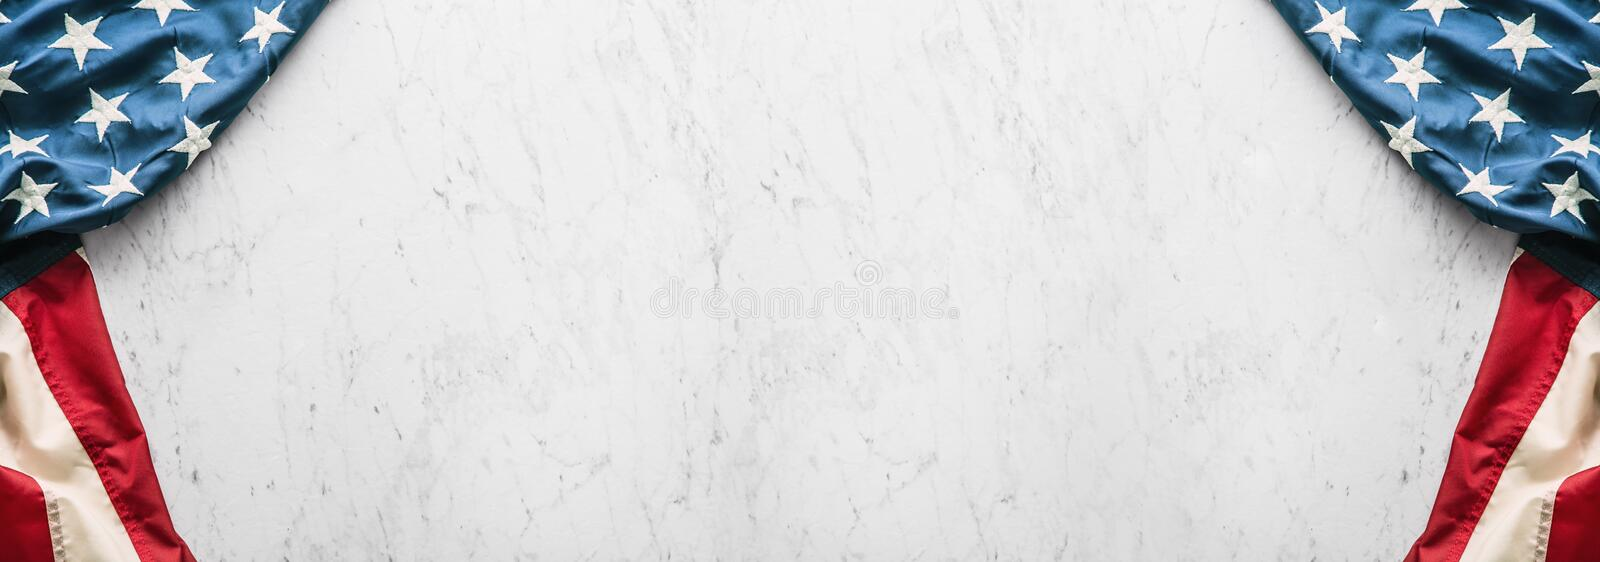 Close-up american flag on white marble background royalty free stock images